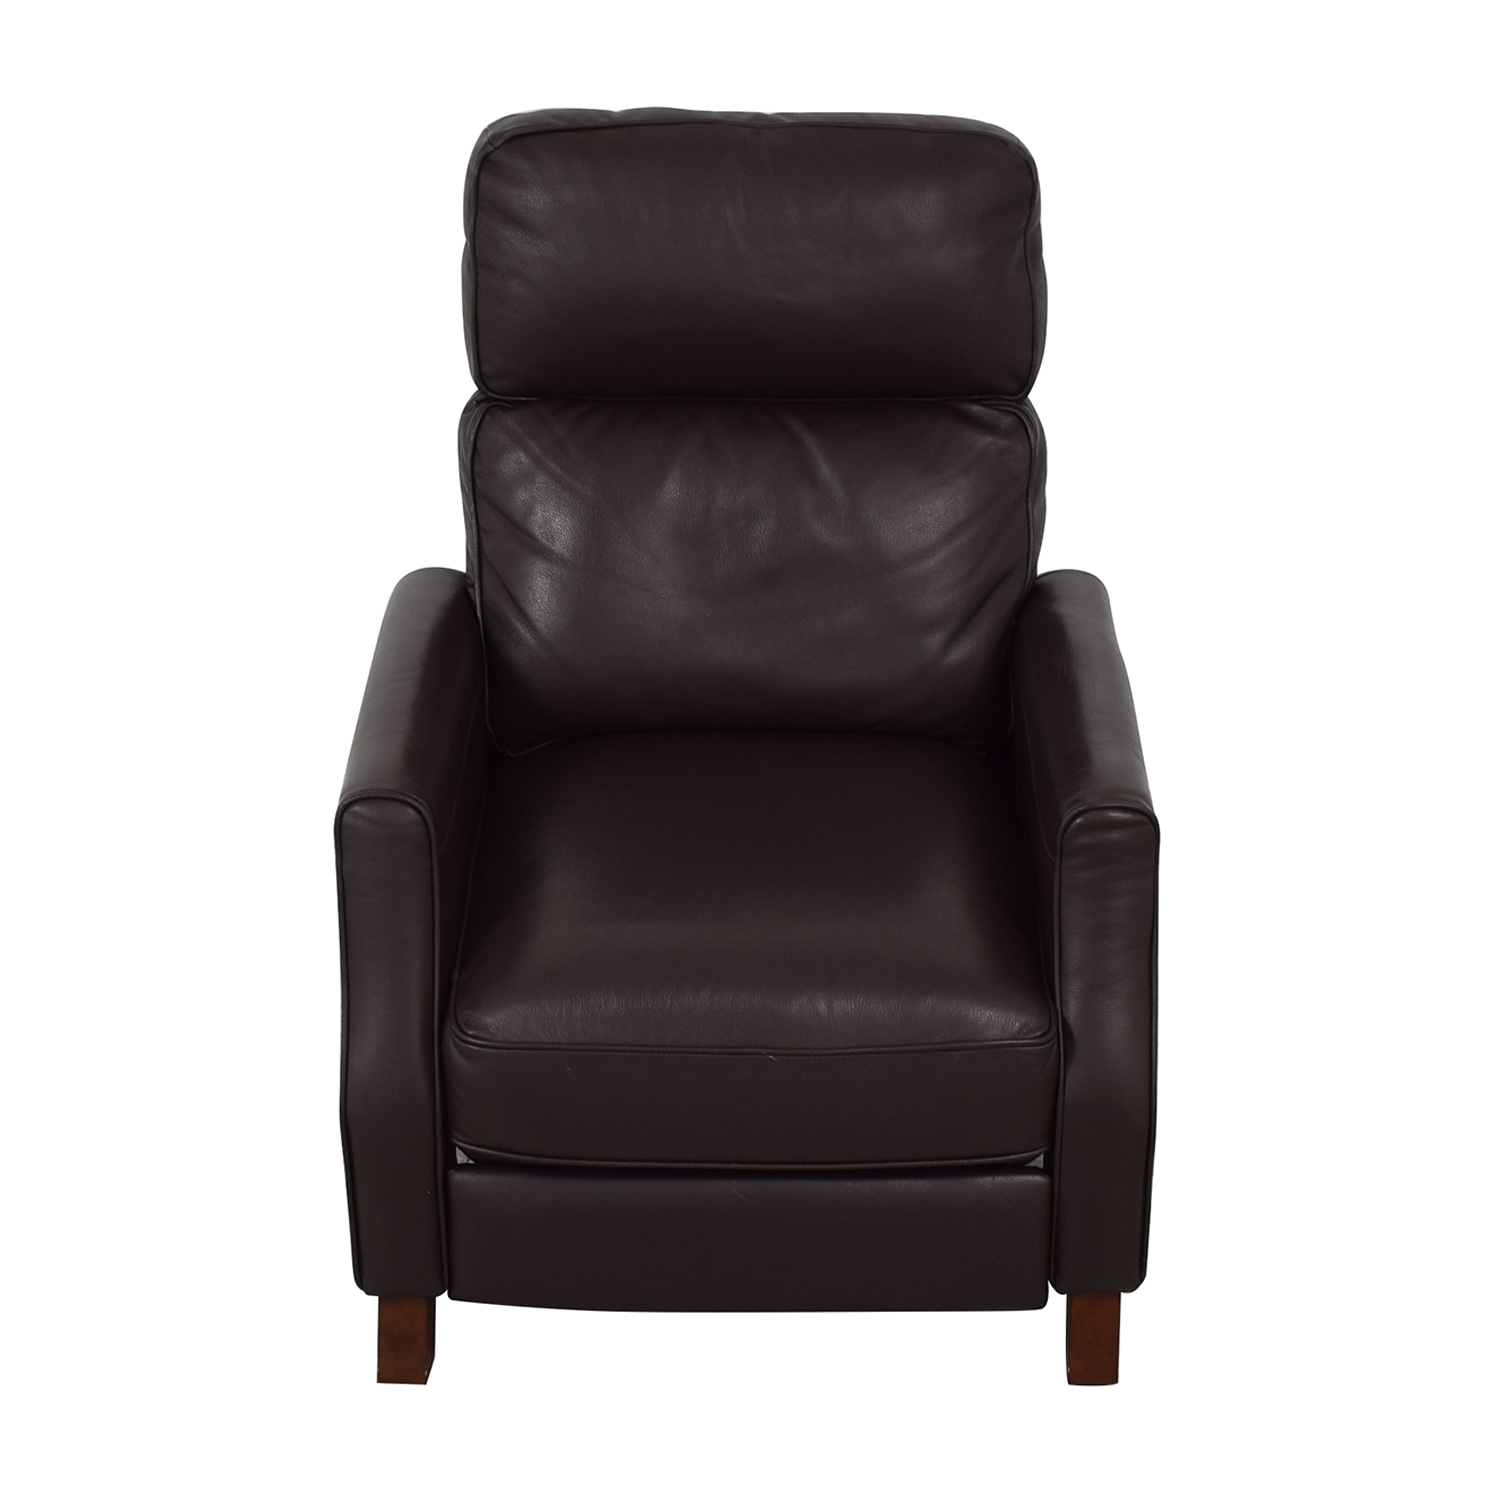 Leather Reclining Chairs 68 Off Macy S Macy S Leather Recliner Chairs